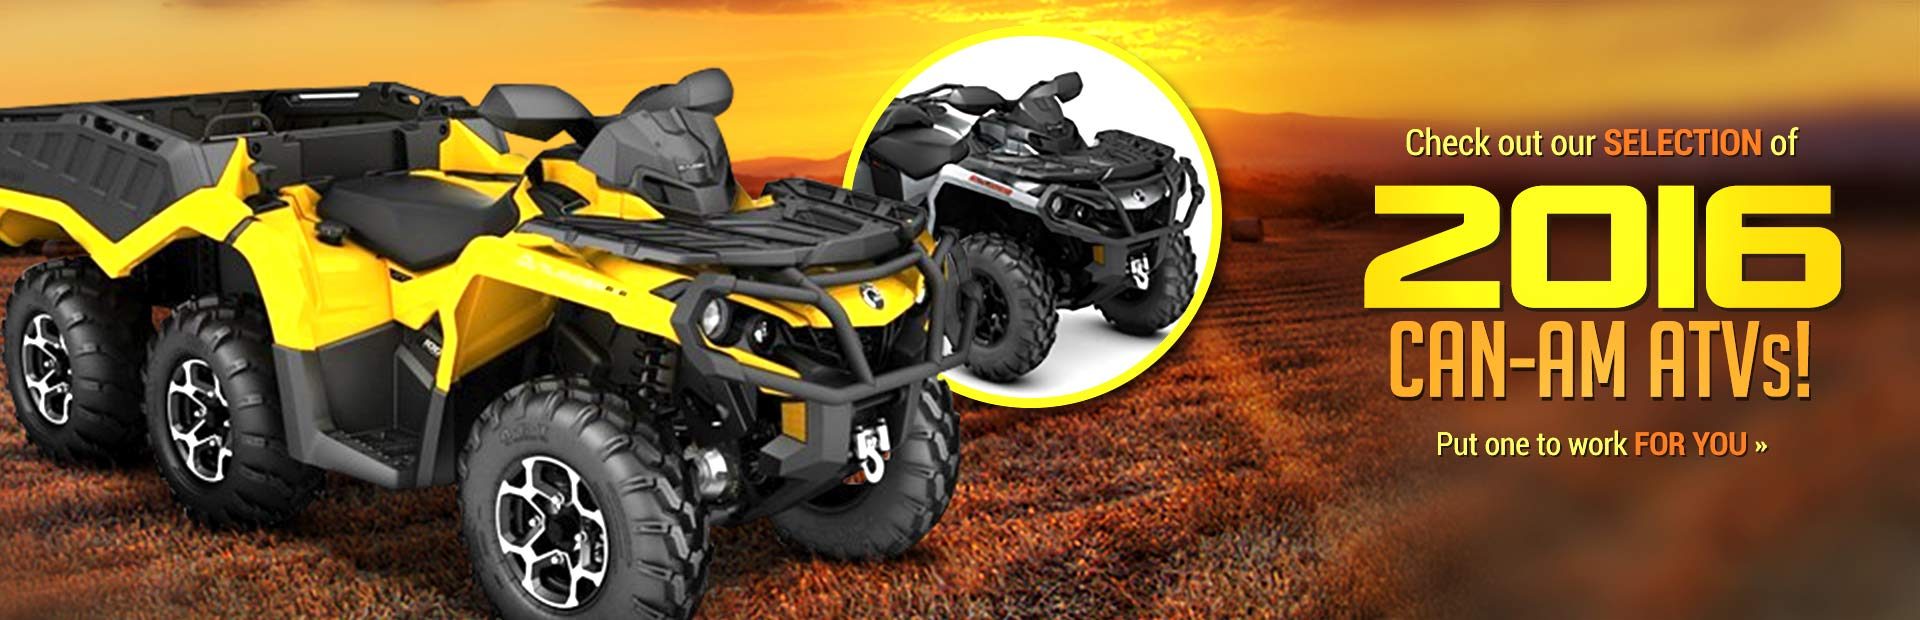 Check out our selection of 2016 Can-Am ATVs!